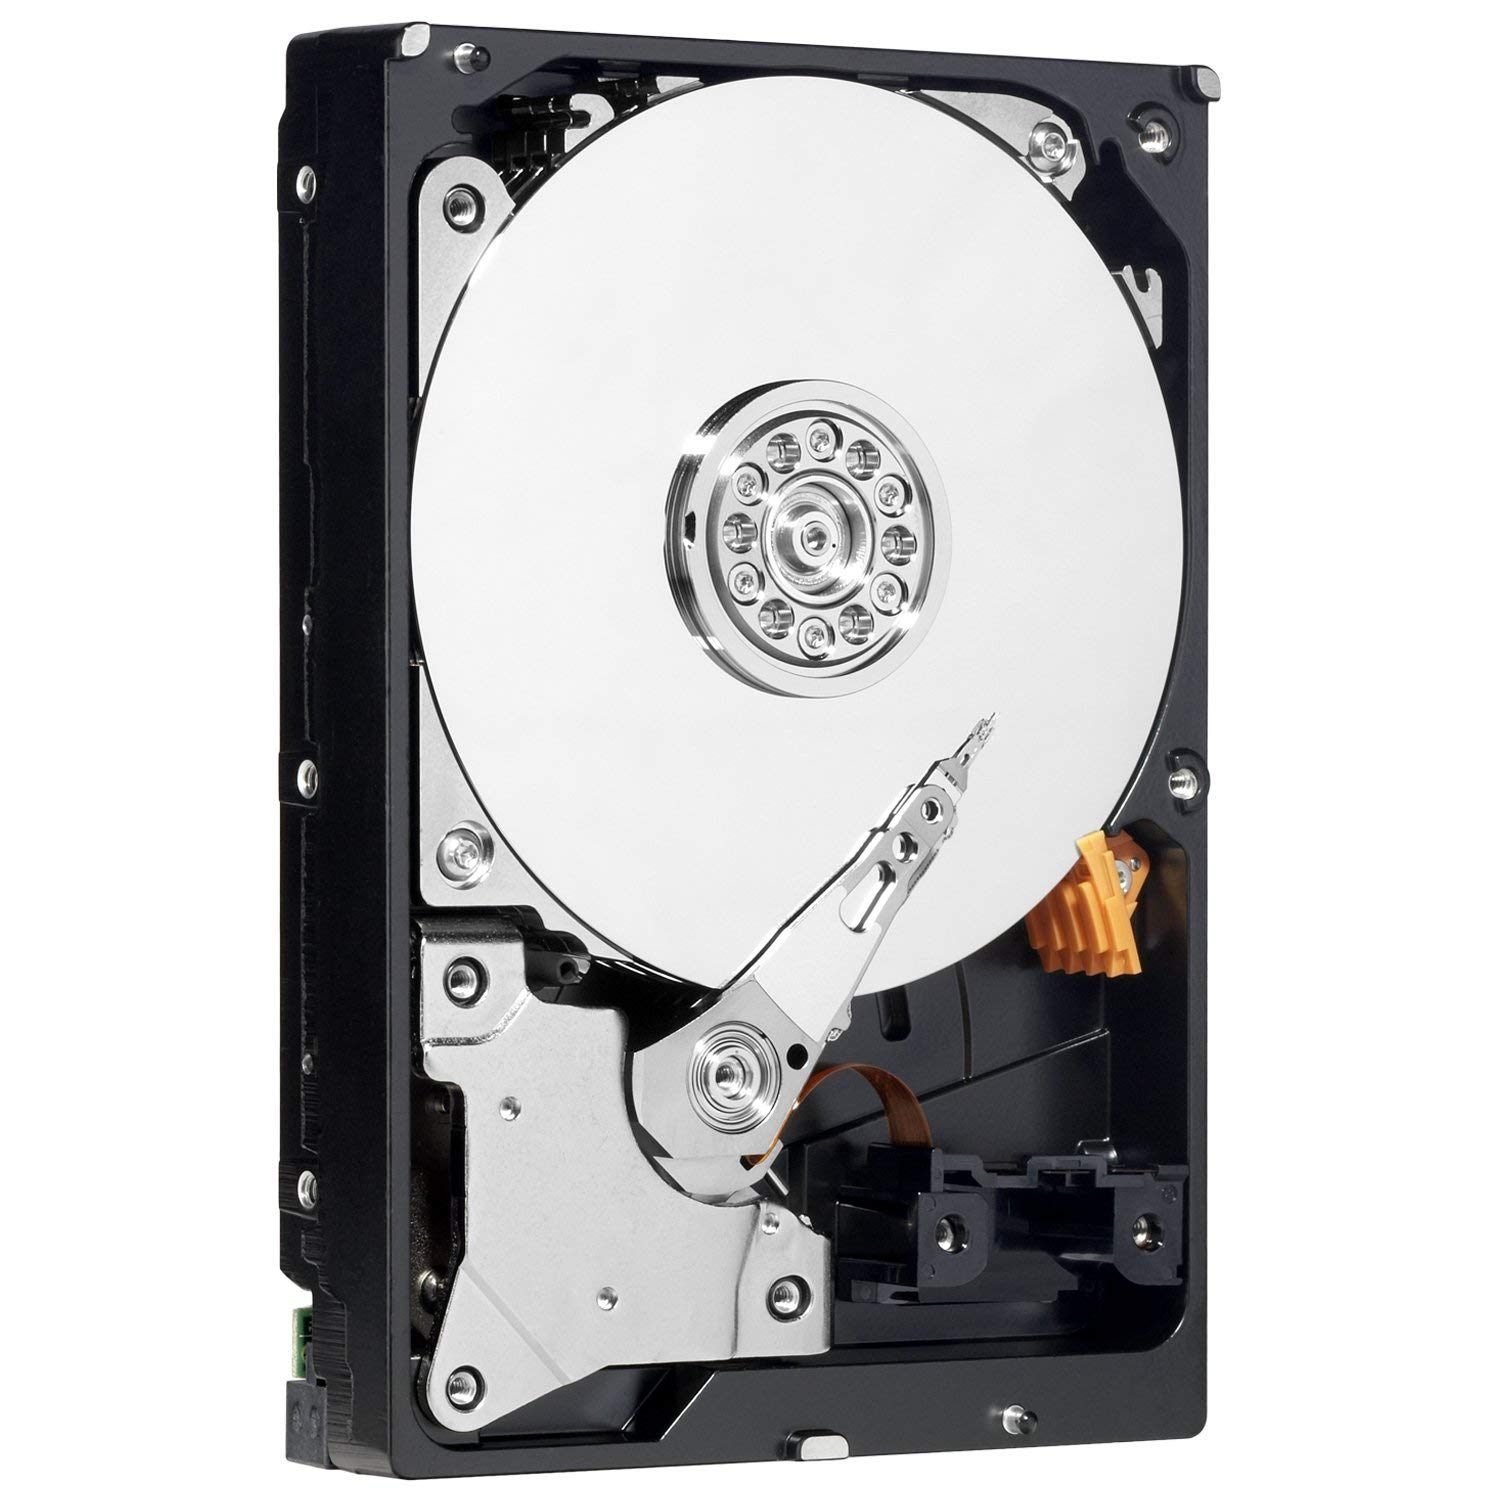 SEAGATE VIDEO 1TB 5900RPM 64MB SATA3 6Gbit/sn ST1000VM002 7/24 REFURBISHED HDD